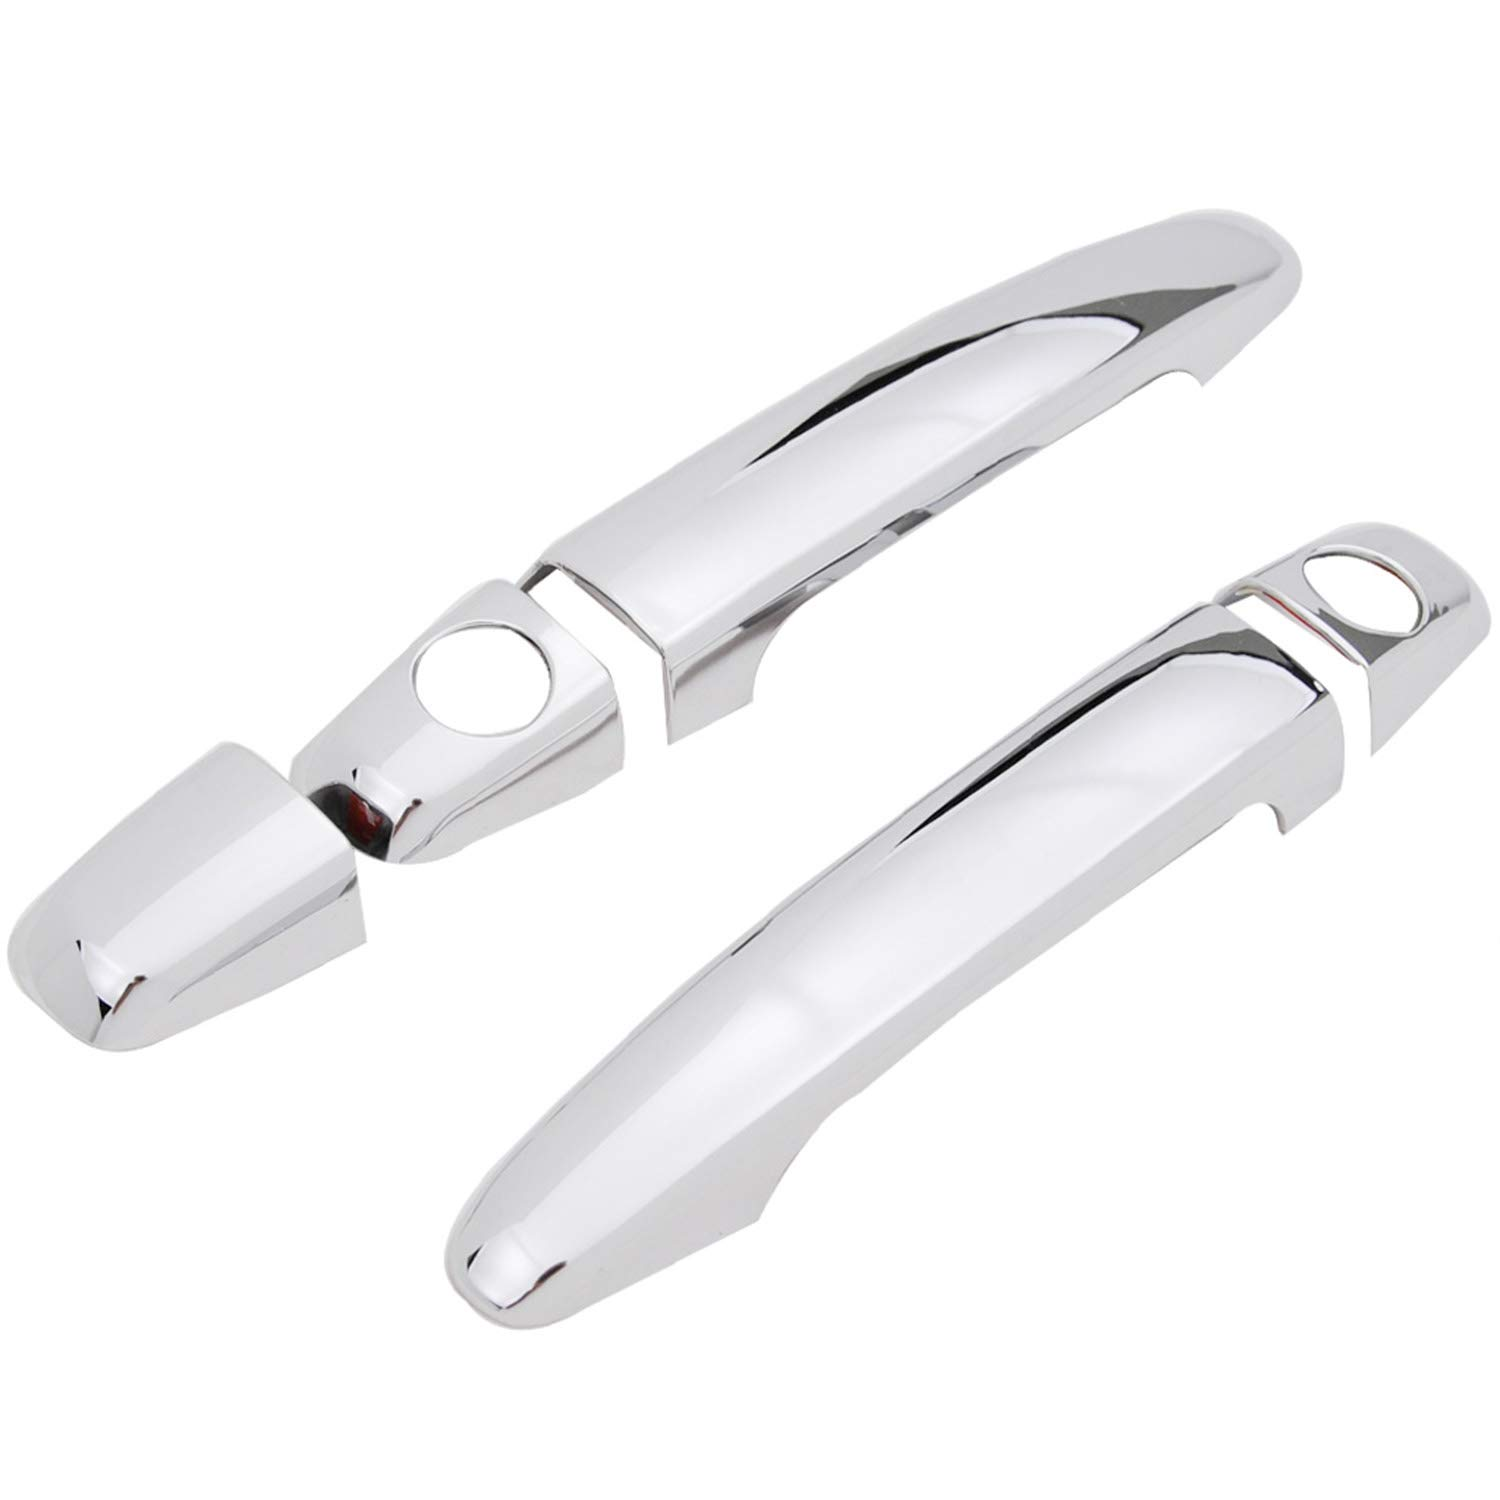 EAG 2 Door Handle Cover Triple Chrome Plated ABS Overlay without Smart Key Fit for 05-15 Toyota Tacoma//03-09 4Runner//07-11 Camry//08-13 Highlander//05-12 Avalon//04-10 Sienna Standard